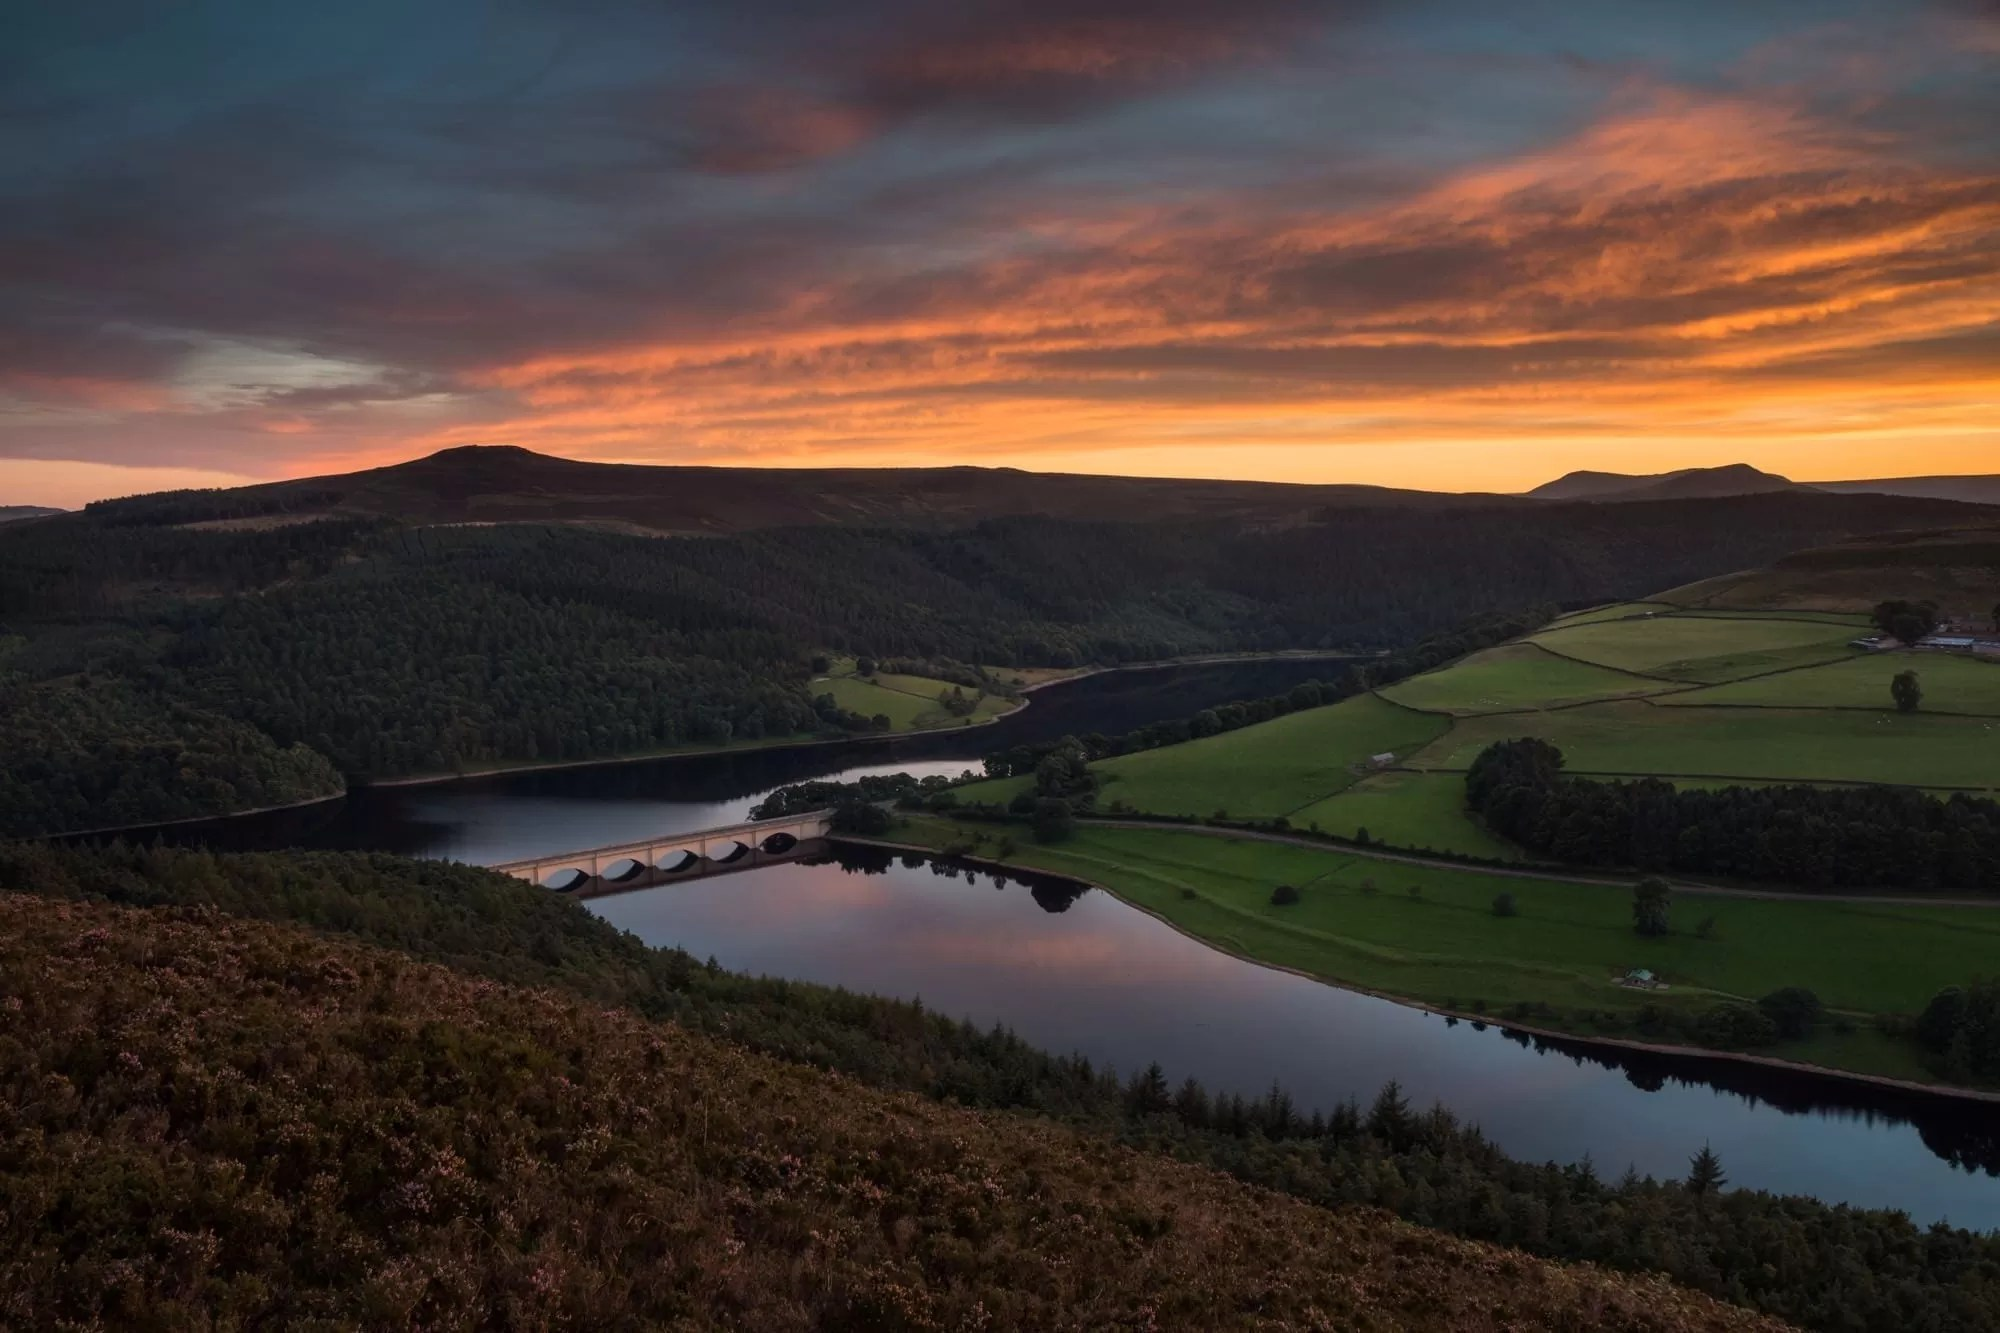 Lead Hill Fiery Skies Over Ladybower Sunset - Heather in the Peak District Photography Workshop